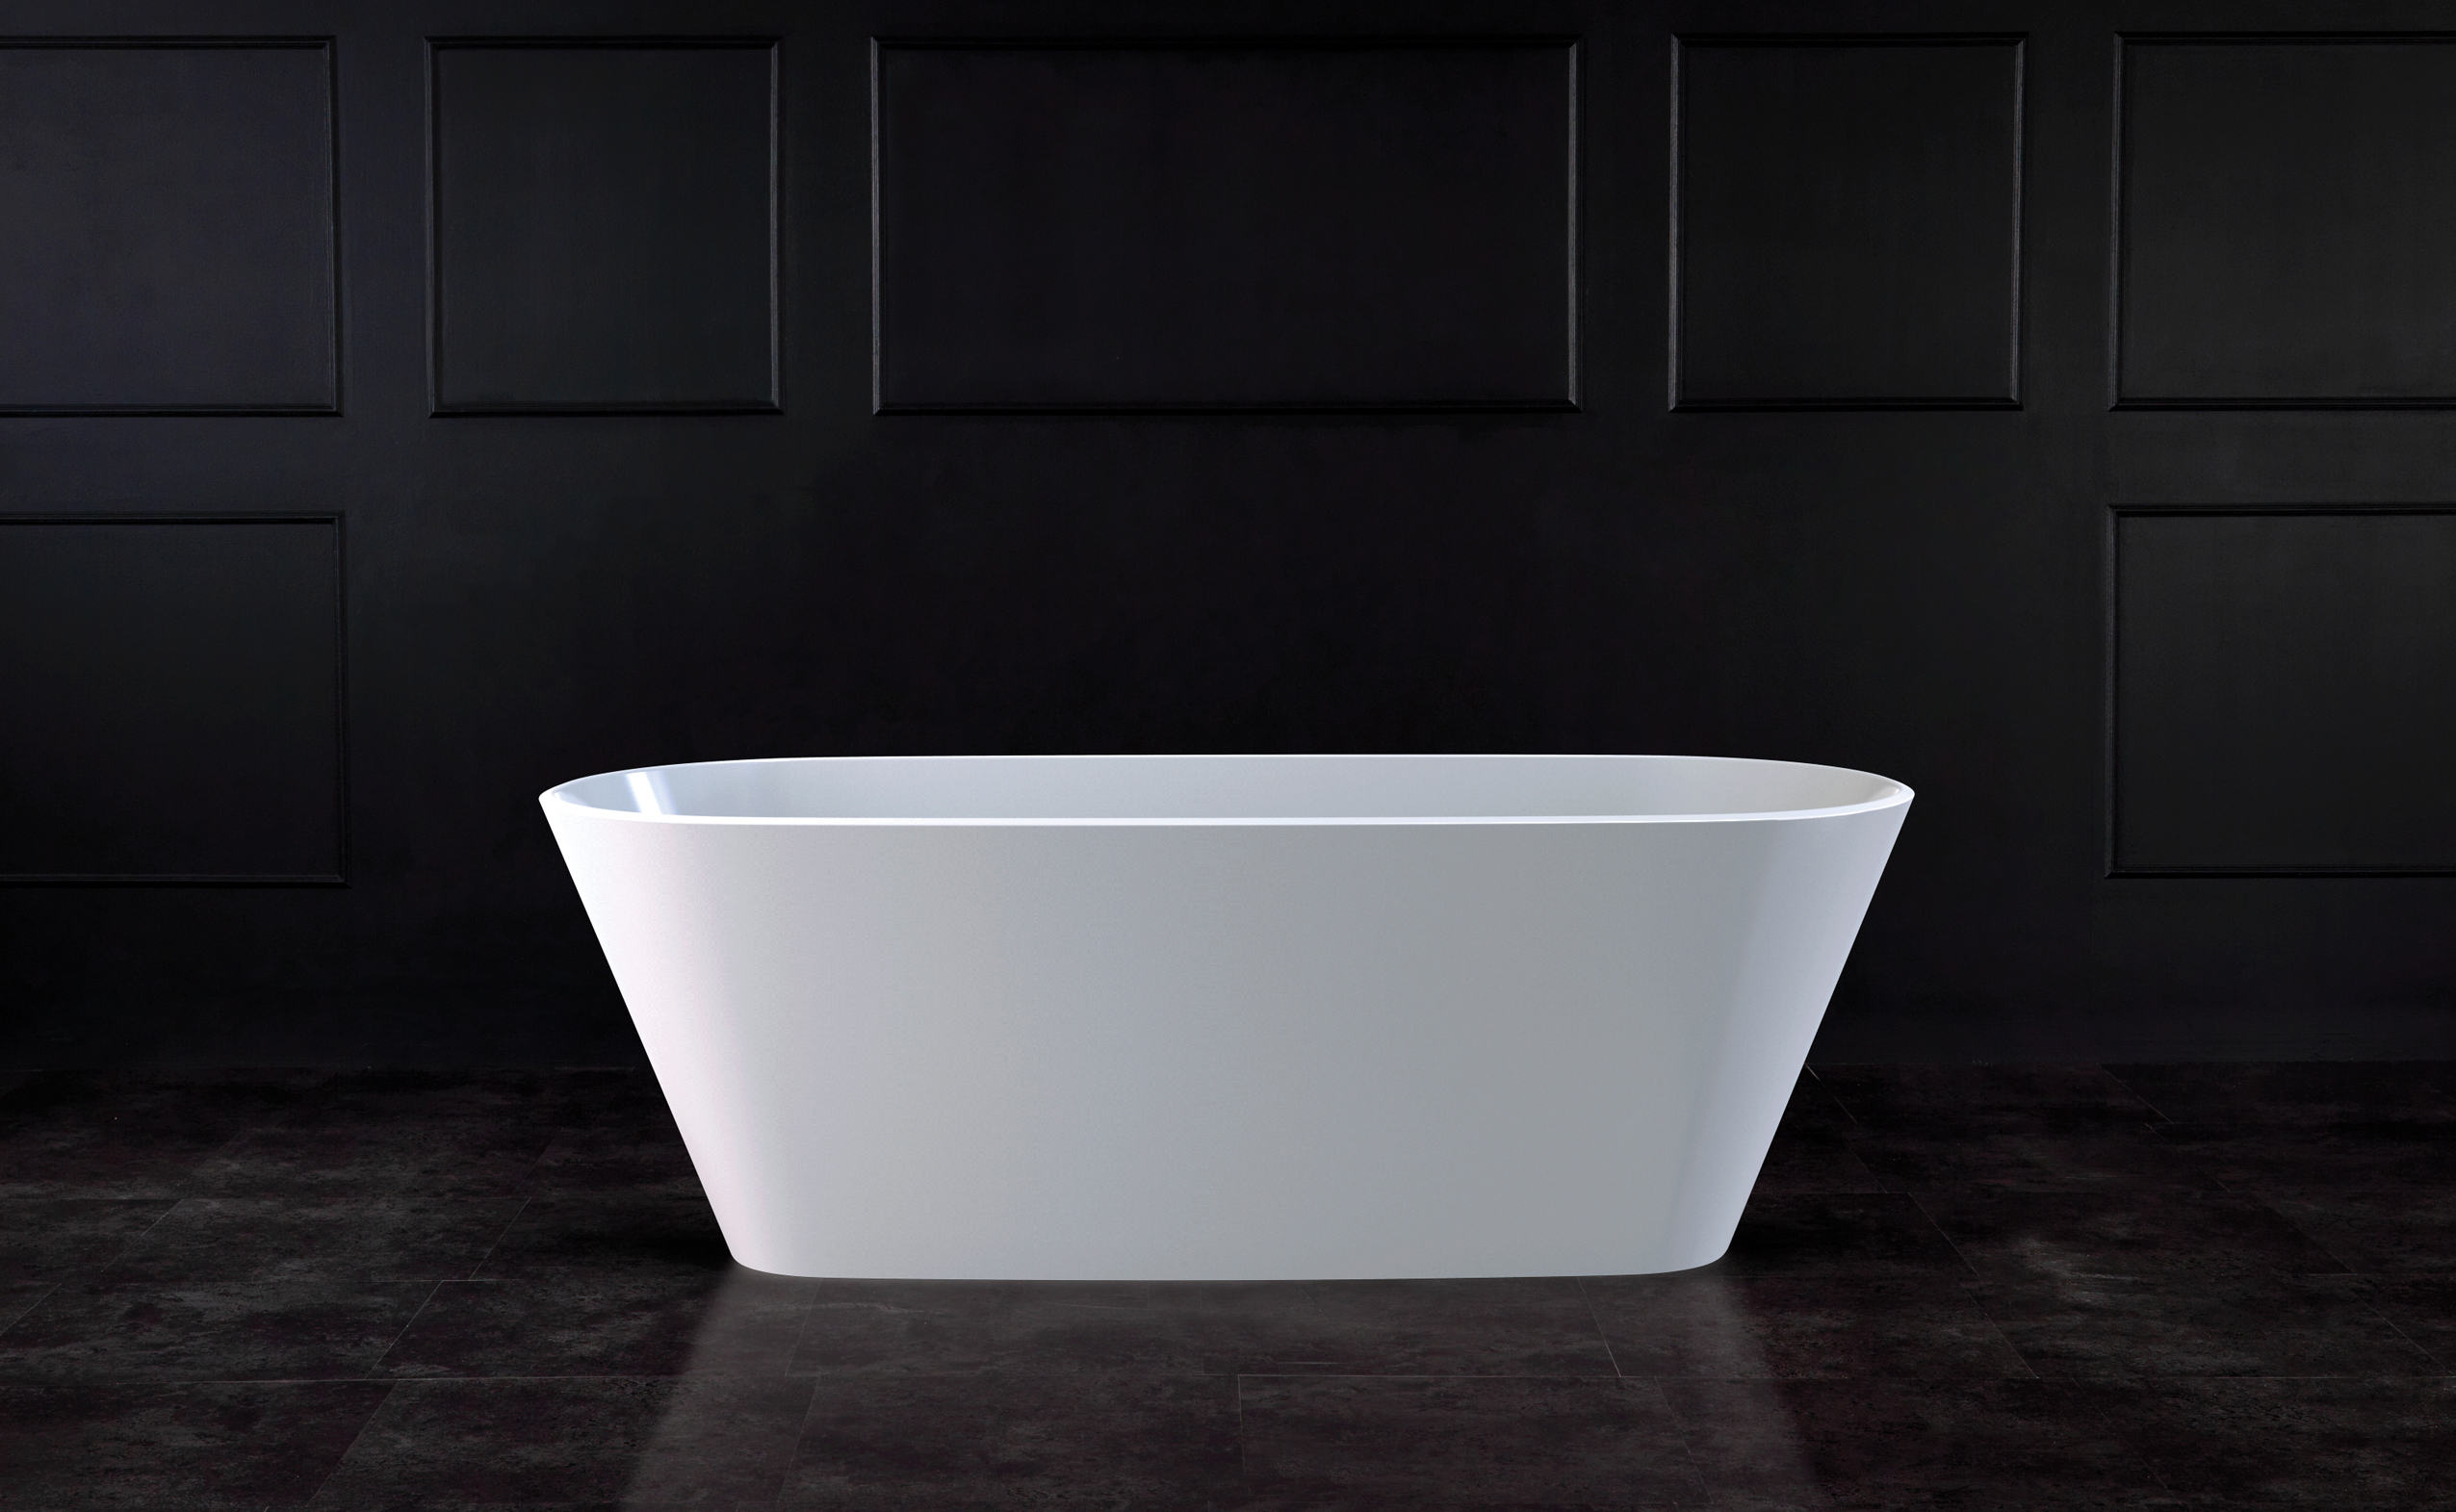 Vetralla 2 Freestanding bath 1650 x 731mm, without overflow